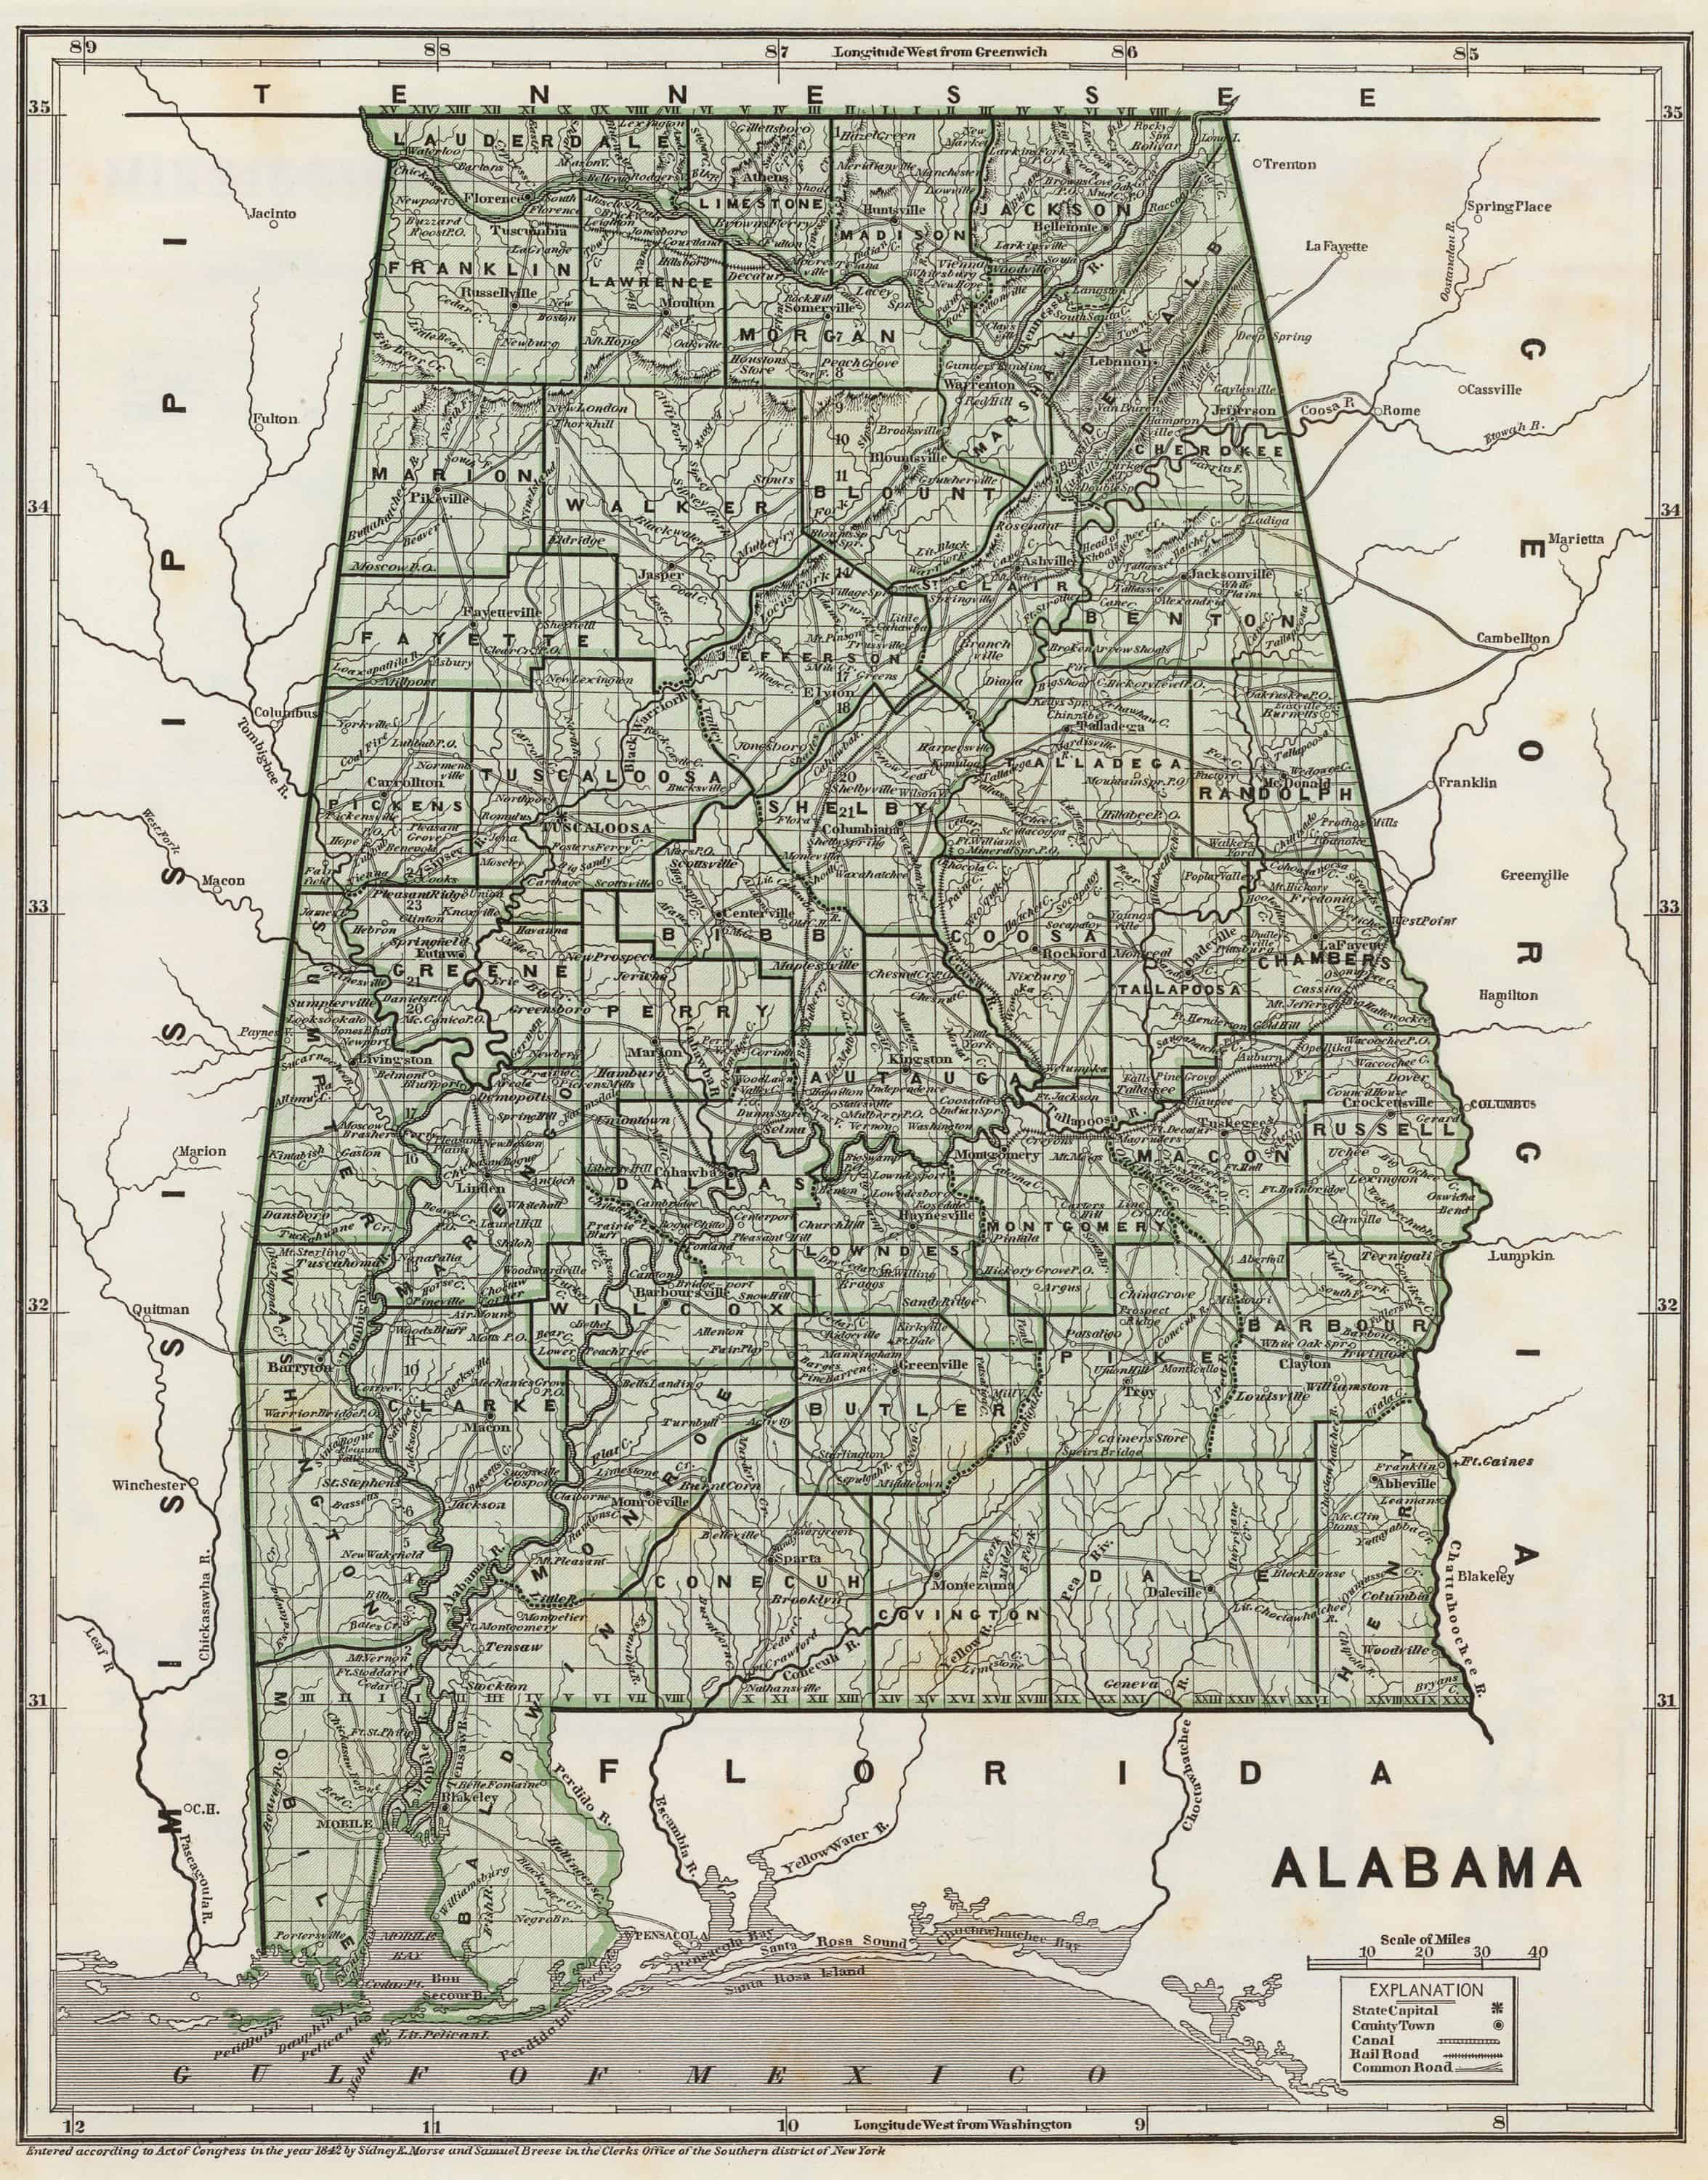 Old Historical City, County and State Maps of Alabama on highway map of alabama, books of alabama, old county road map alabama, cities and towns in alabama, map of mount vernon alabama, map of places to visit in alabama, old railroad maps alabama, map of mississippi and alabama, old maps vermont, mountain ranges map of alabama, old houses in mobile alabama, old maps nebraska, old maps maryland, old california maps, old maps minnesota, physical map of alabama, old federal road jasper alabama, fort stoddert alabama, large map of alabama, the map of alabama,